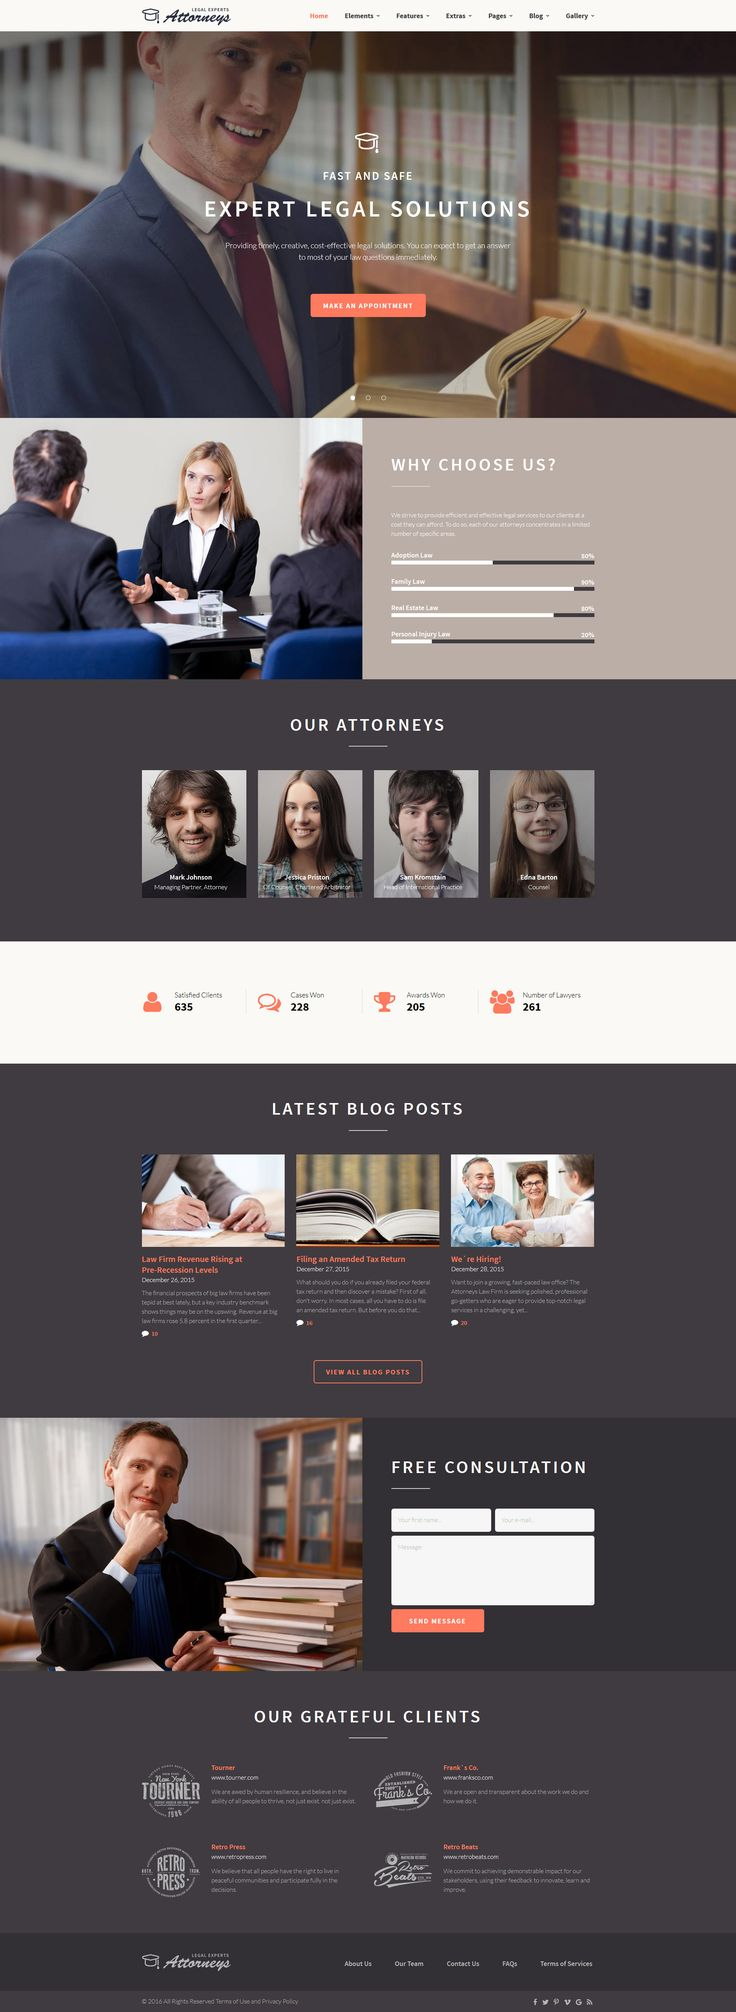 Law Firm Responsive Website Template http://www.templatemonster.com/website-templates/law-firm-responsive-website-template-58966.html